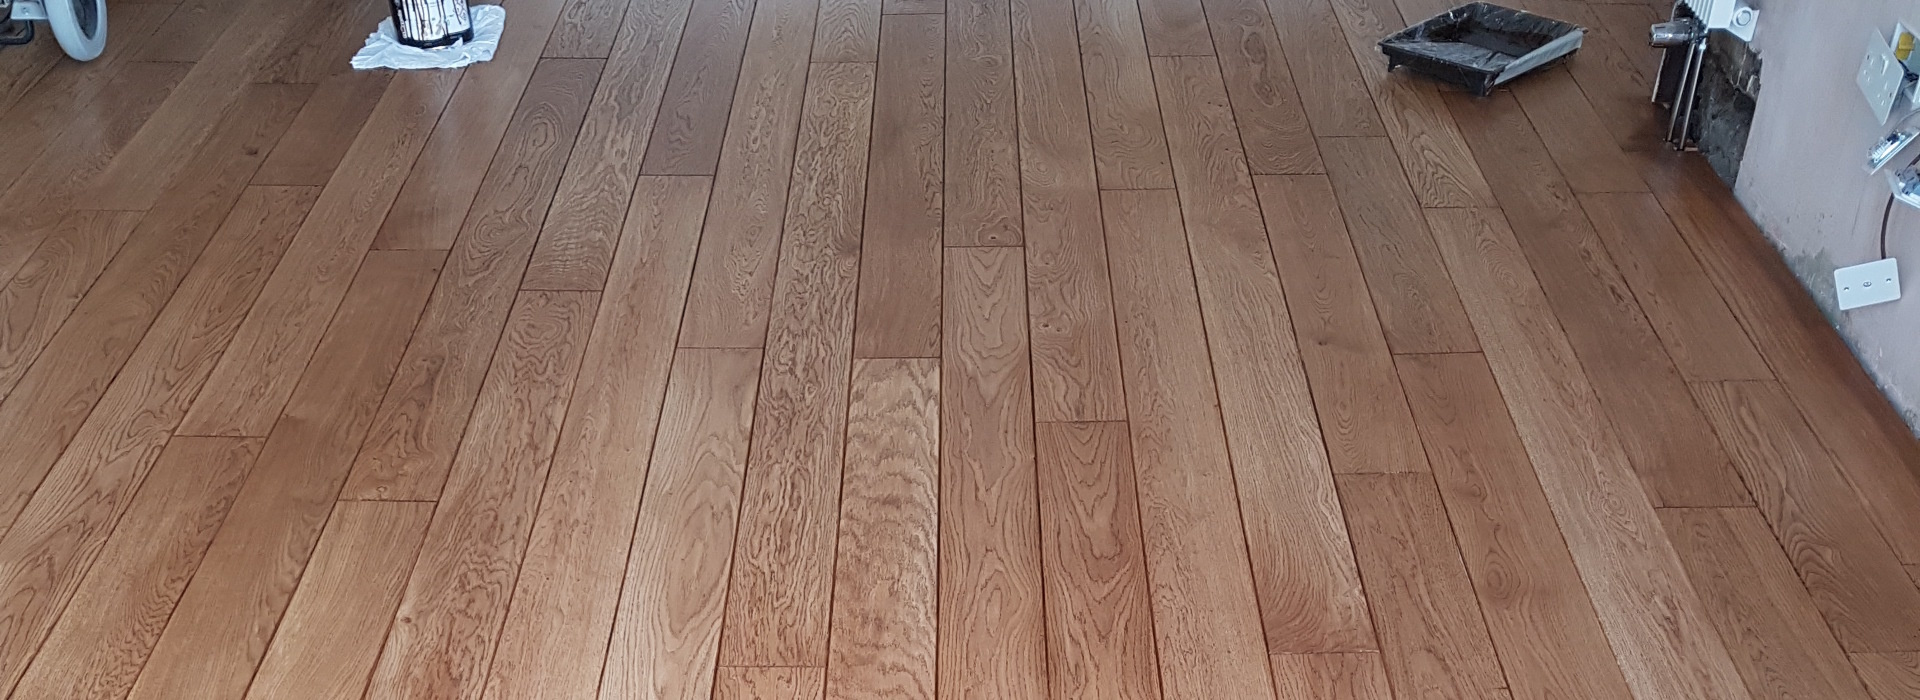 Use our quality Engineered wood flooring